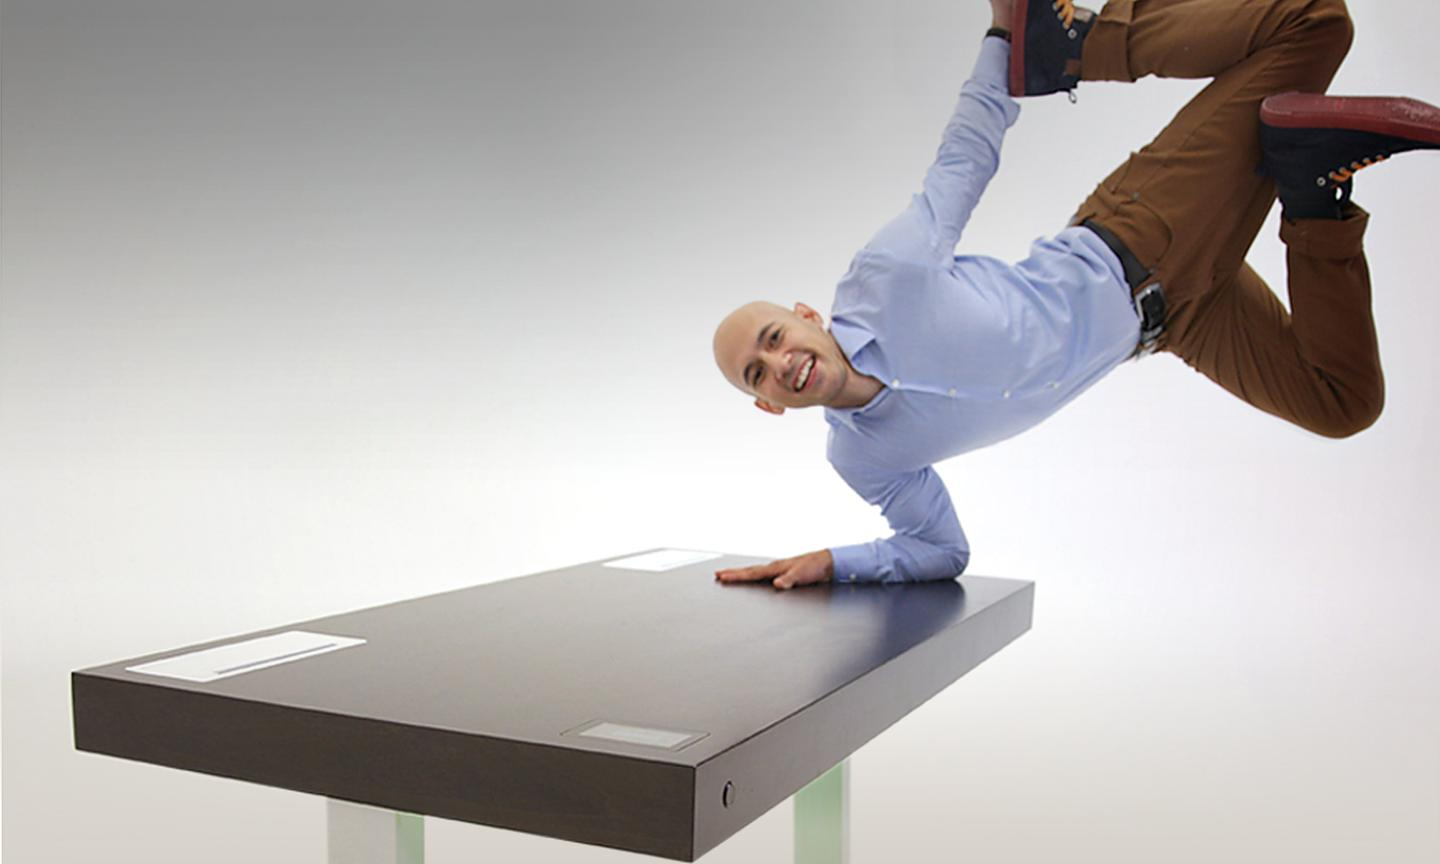 The hardwood surface of the desktop is 58.5 x 29.5 in (148.6 x 75 cm) and can support a dynamic load up to 75 lbs (34 kg)